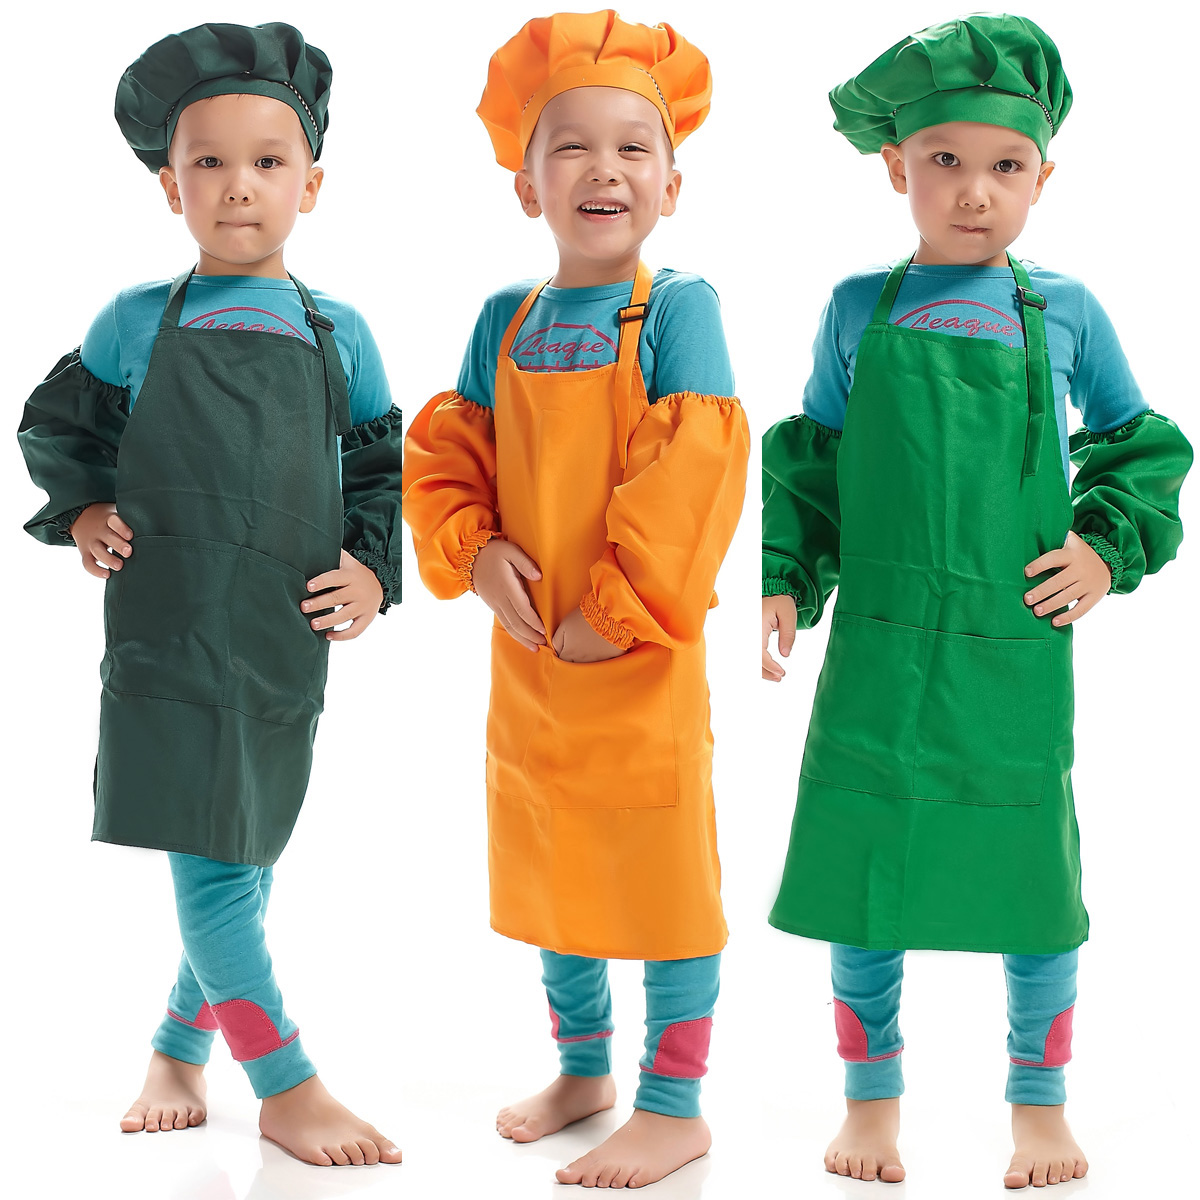 Dashing Children Multicolor Cooking Clothing Chef Uniform For Kids Kitchen Cosplay Halloween Party Costume Boys Girls Apron Hat Cuff